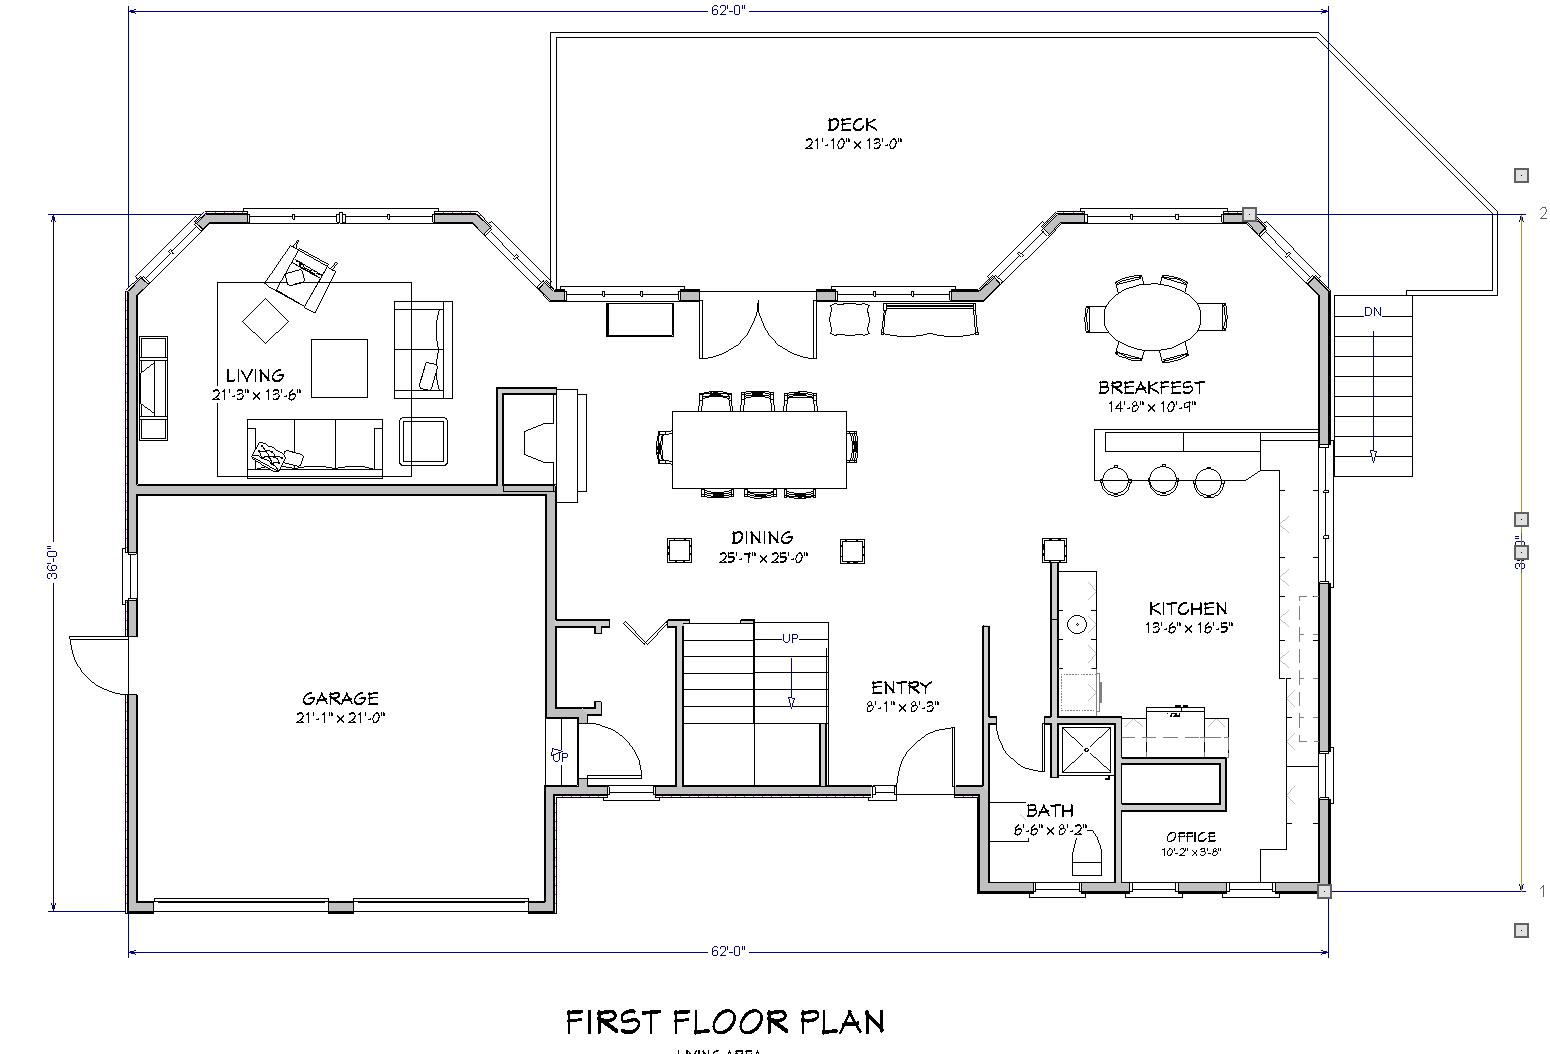 Beach House Plan 1st Floor (Image 3 of 10)